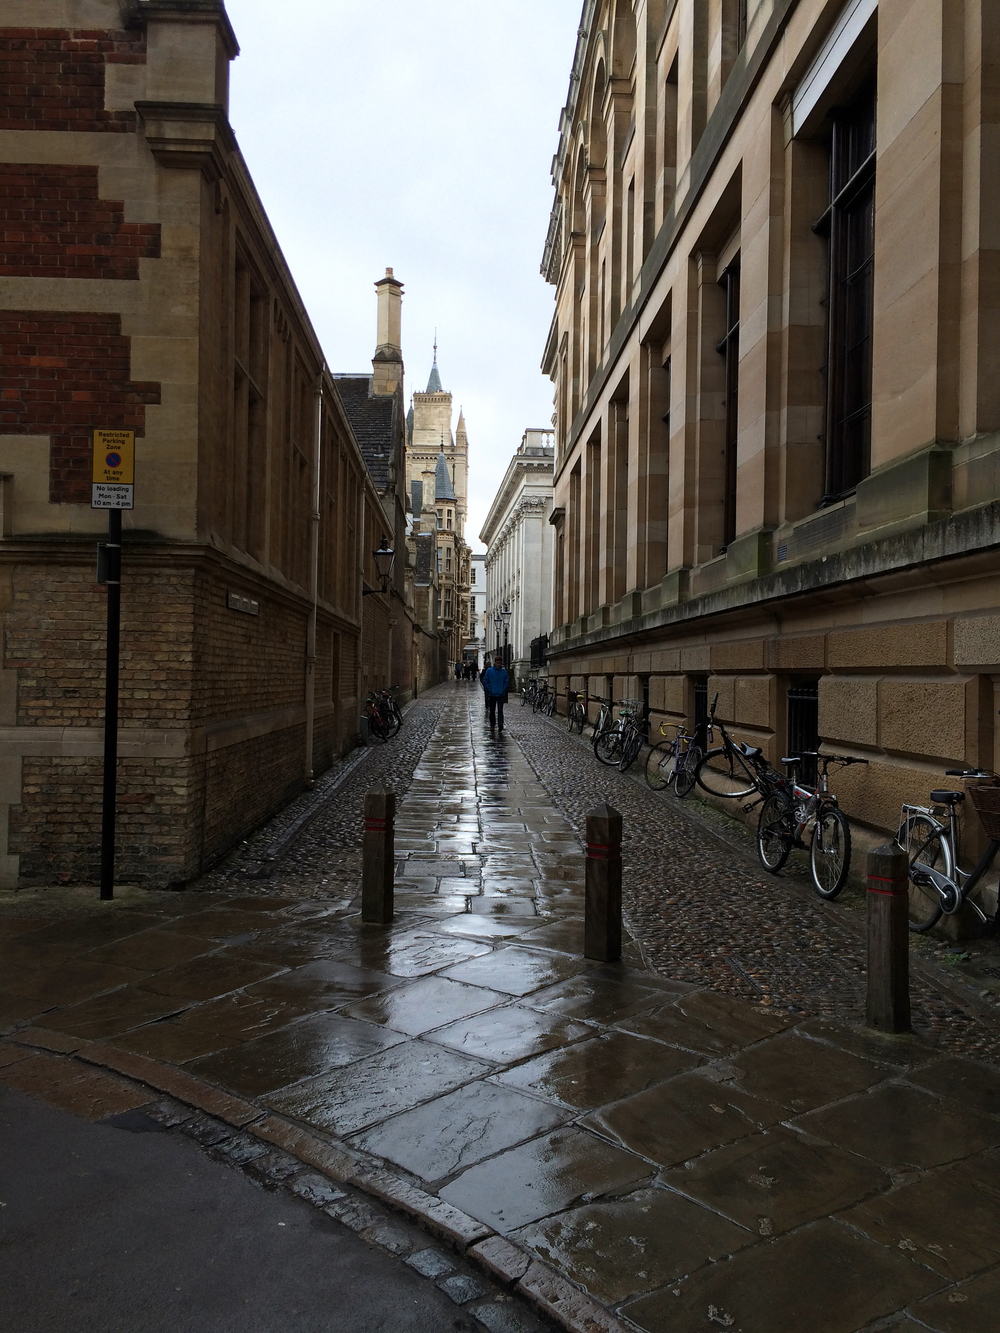 Senate House Passage in Cambridge